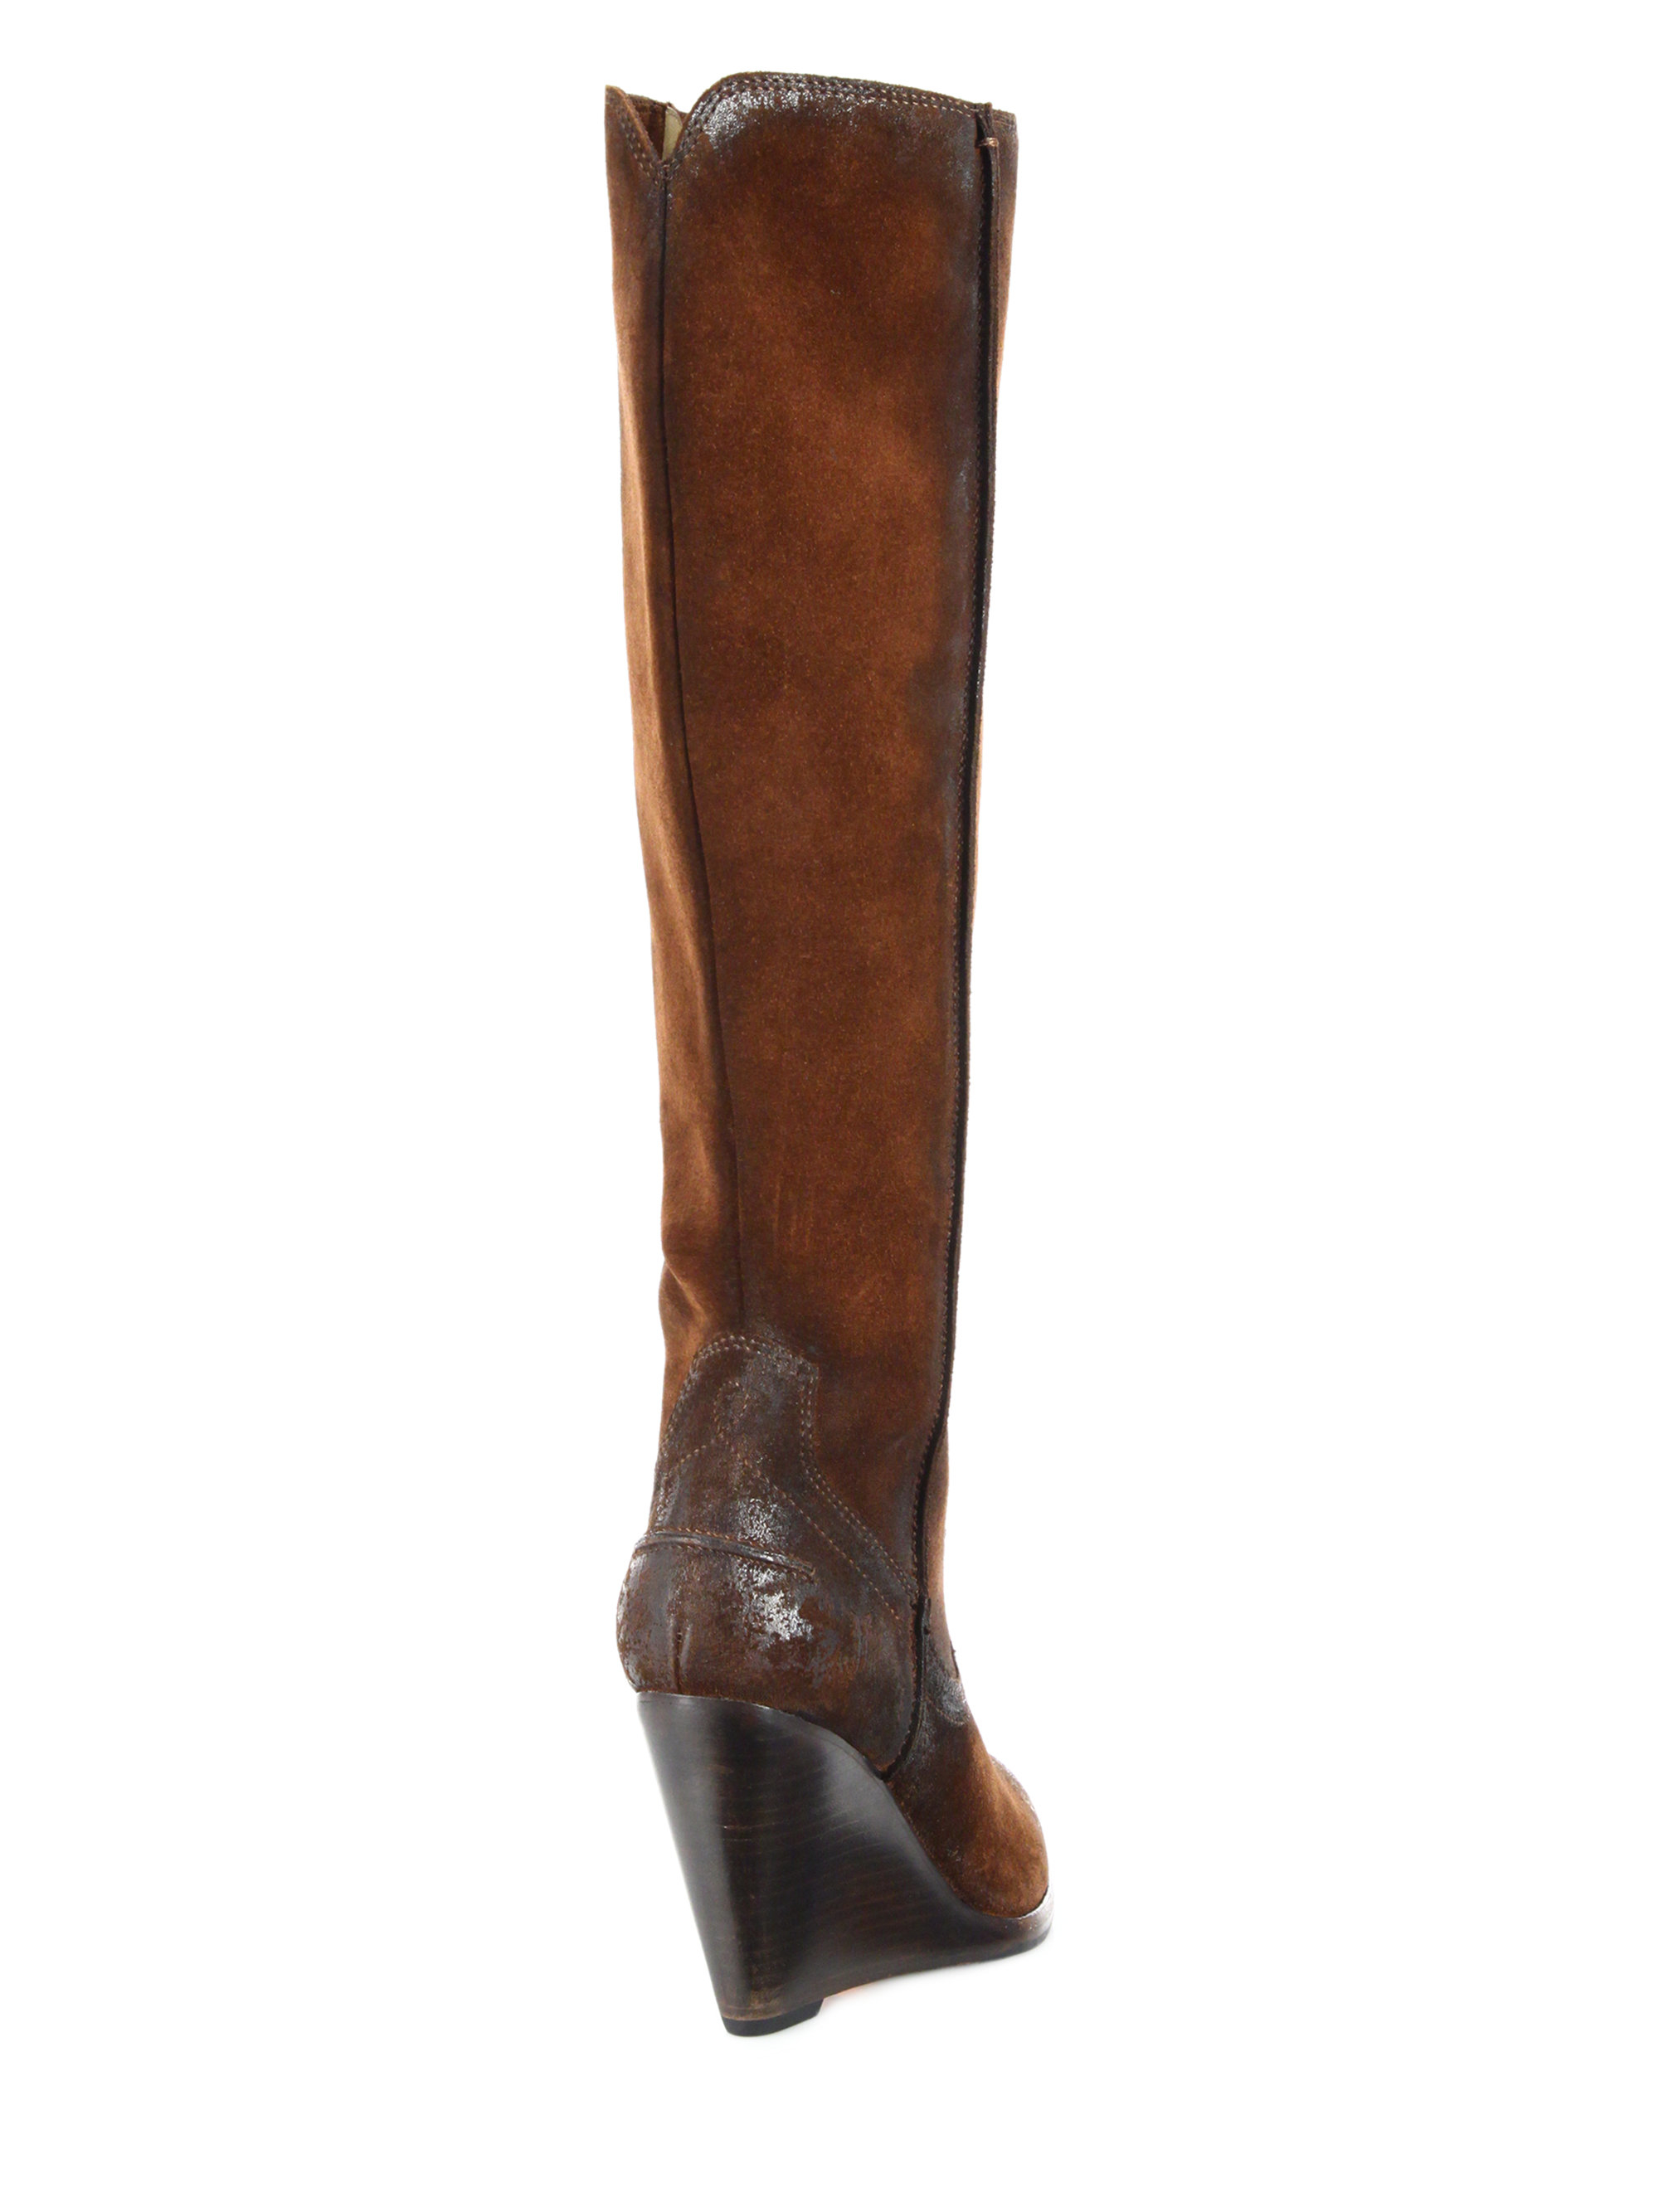 d45f5cff542 Lyst - Frye Cece Seamed Suede Wedge Boots in Brown